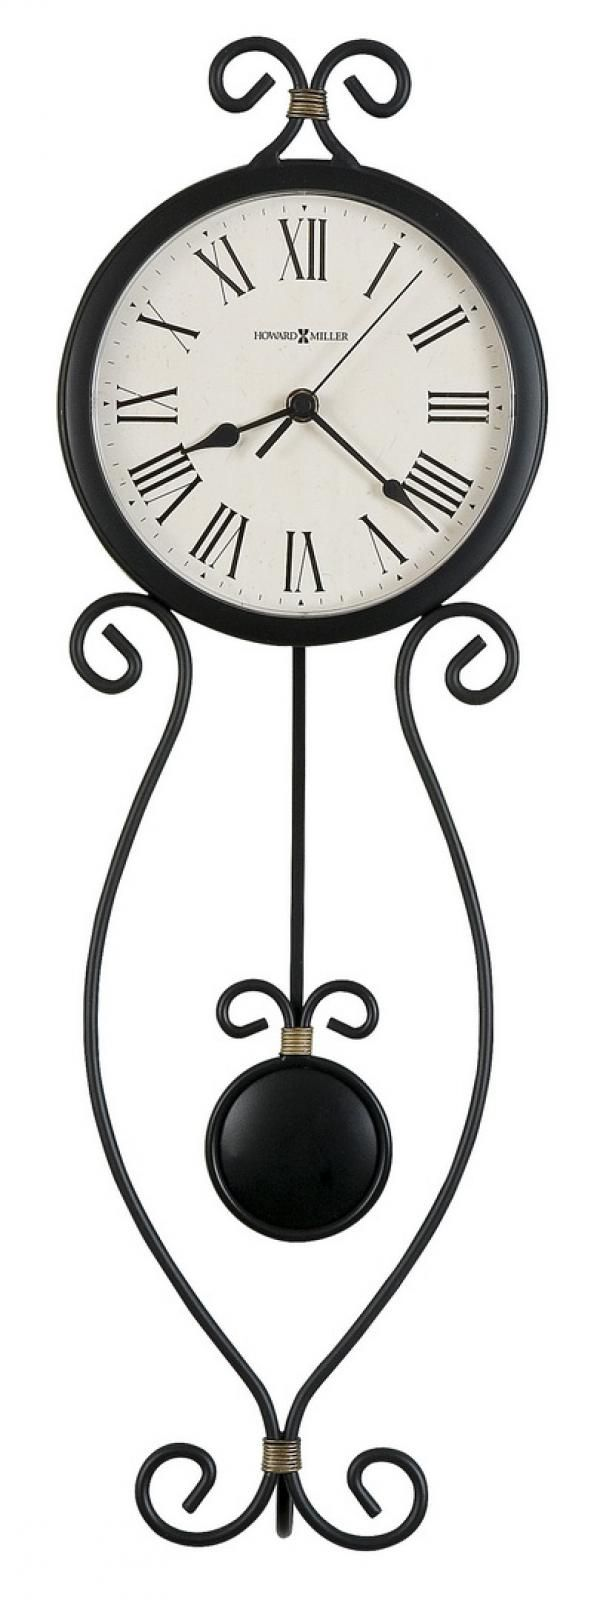 Found it at Clockway.com - Howard Miller Wrought-Iron Pendulum Wall Clock - CHM2496